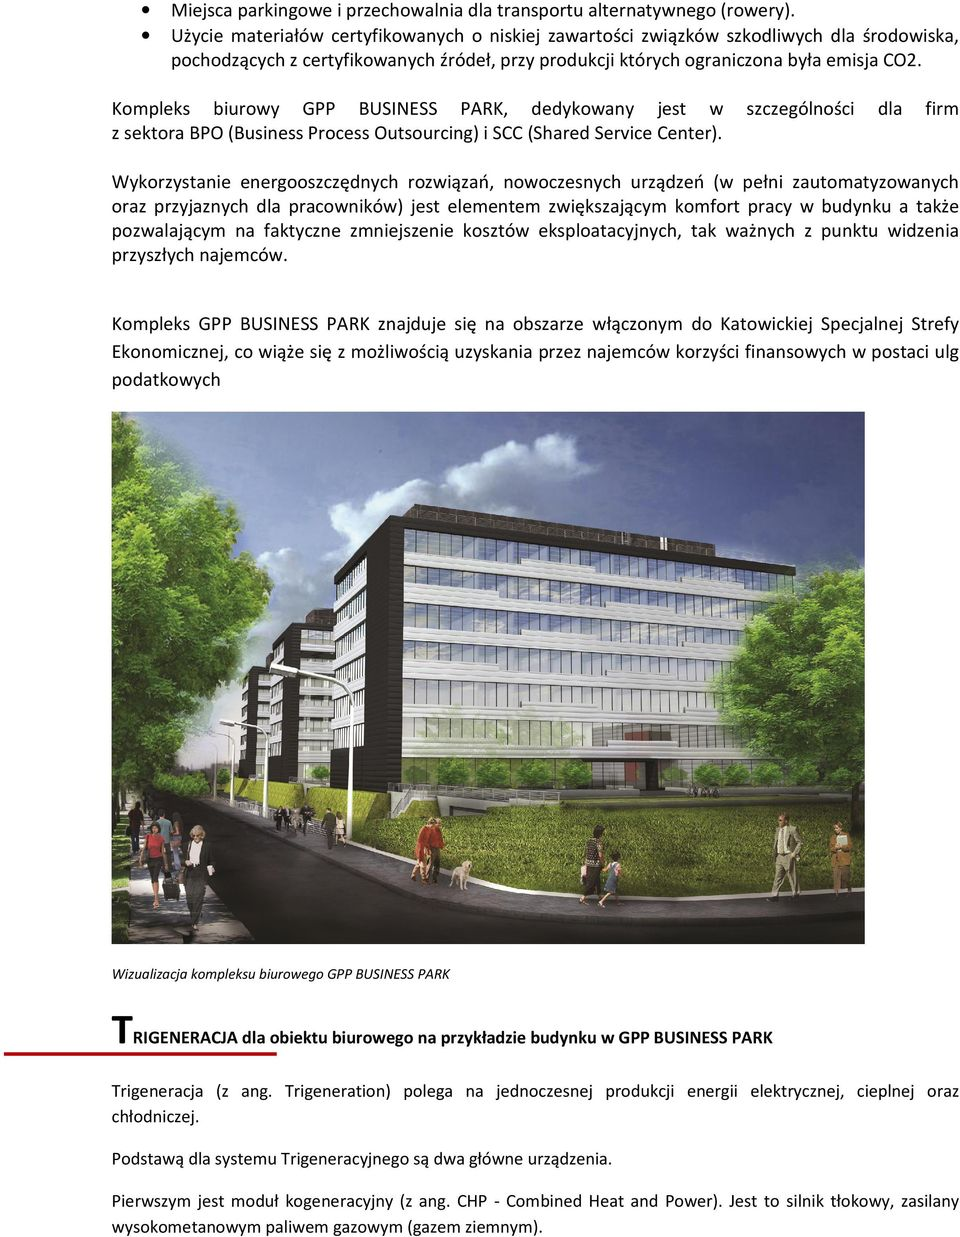 Kompleks biurowy GPP BUSINESS PARK, dedykowany jest w z sektora BPO (Business Process Outsourcing) i SCC (Shared Service Center).